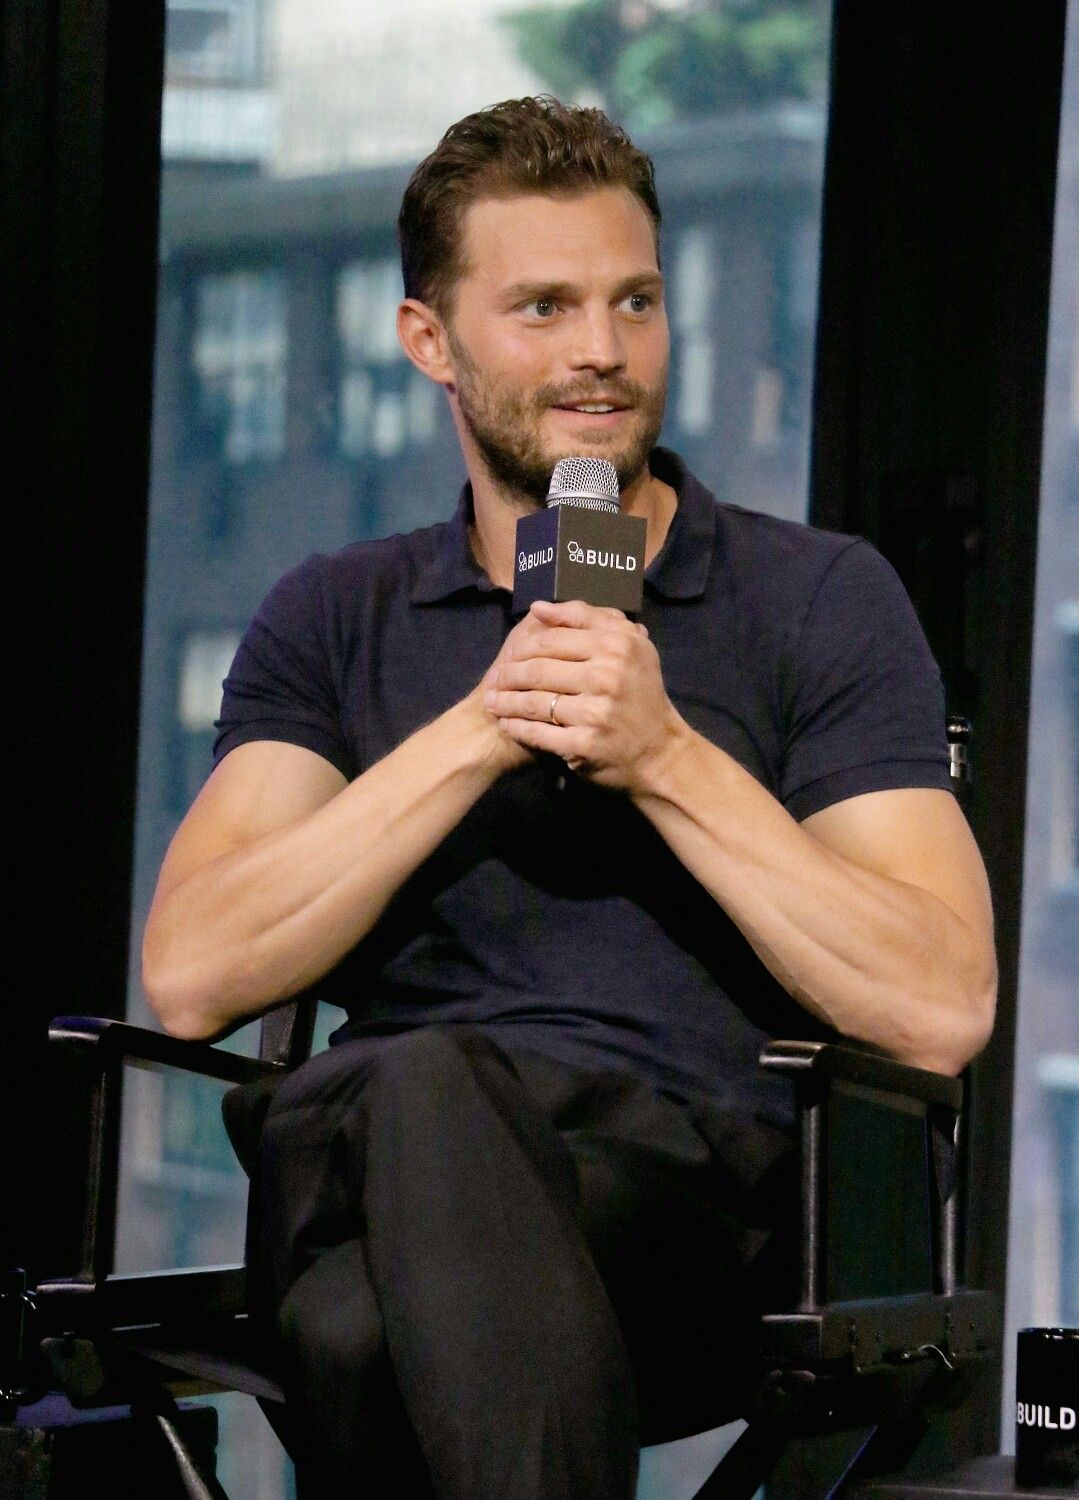 Aol Build Q&A in NY 5th August 2016